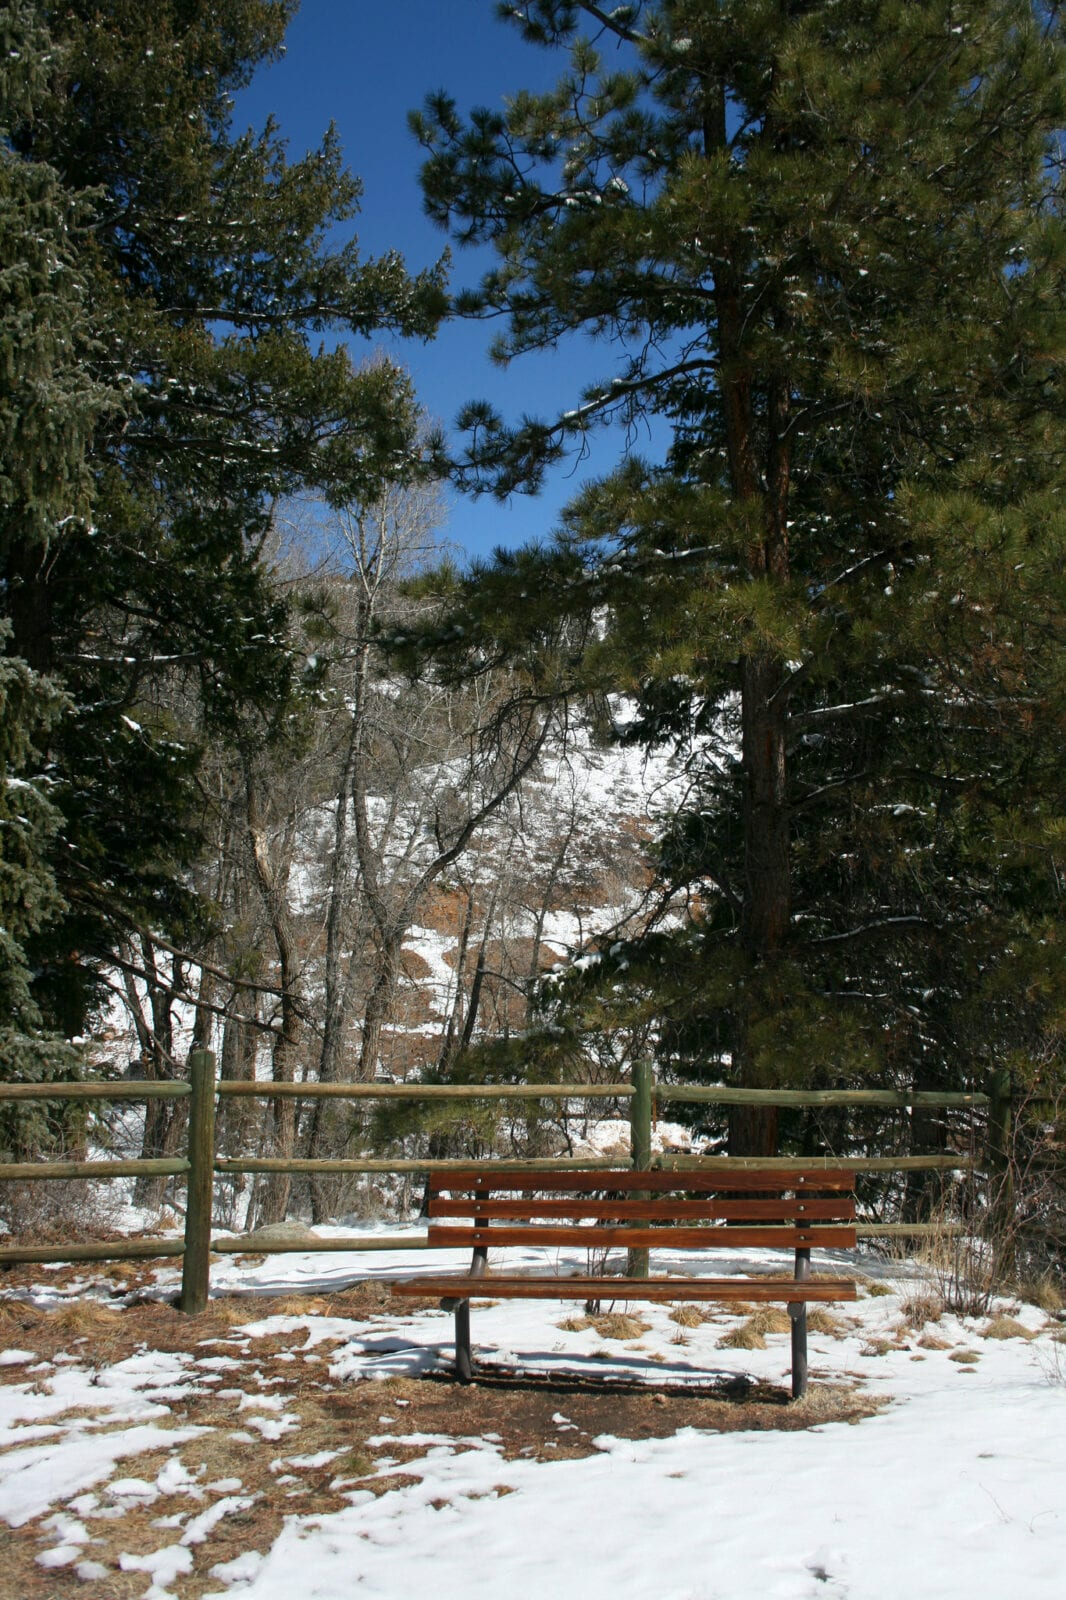 Image of a park bench in the winter at Reynolds Park in Conifer, Colorado